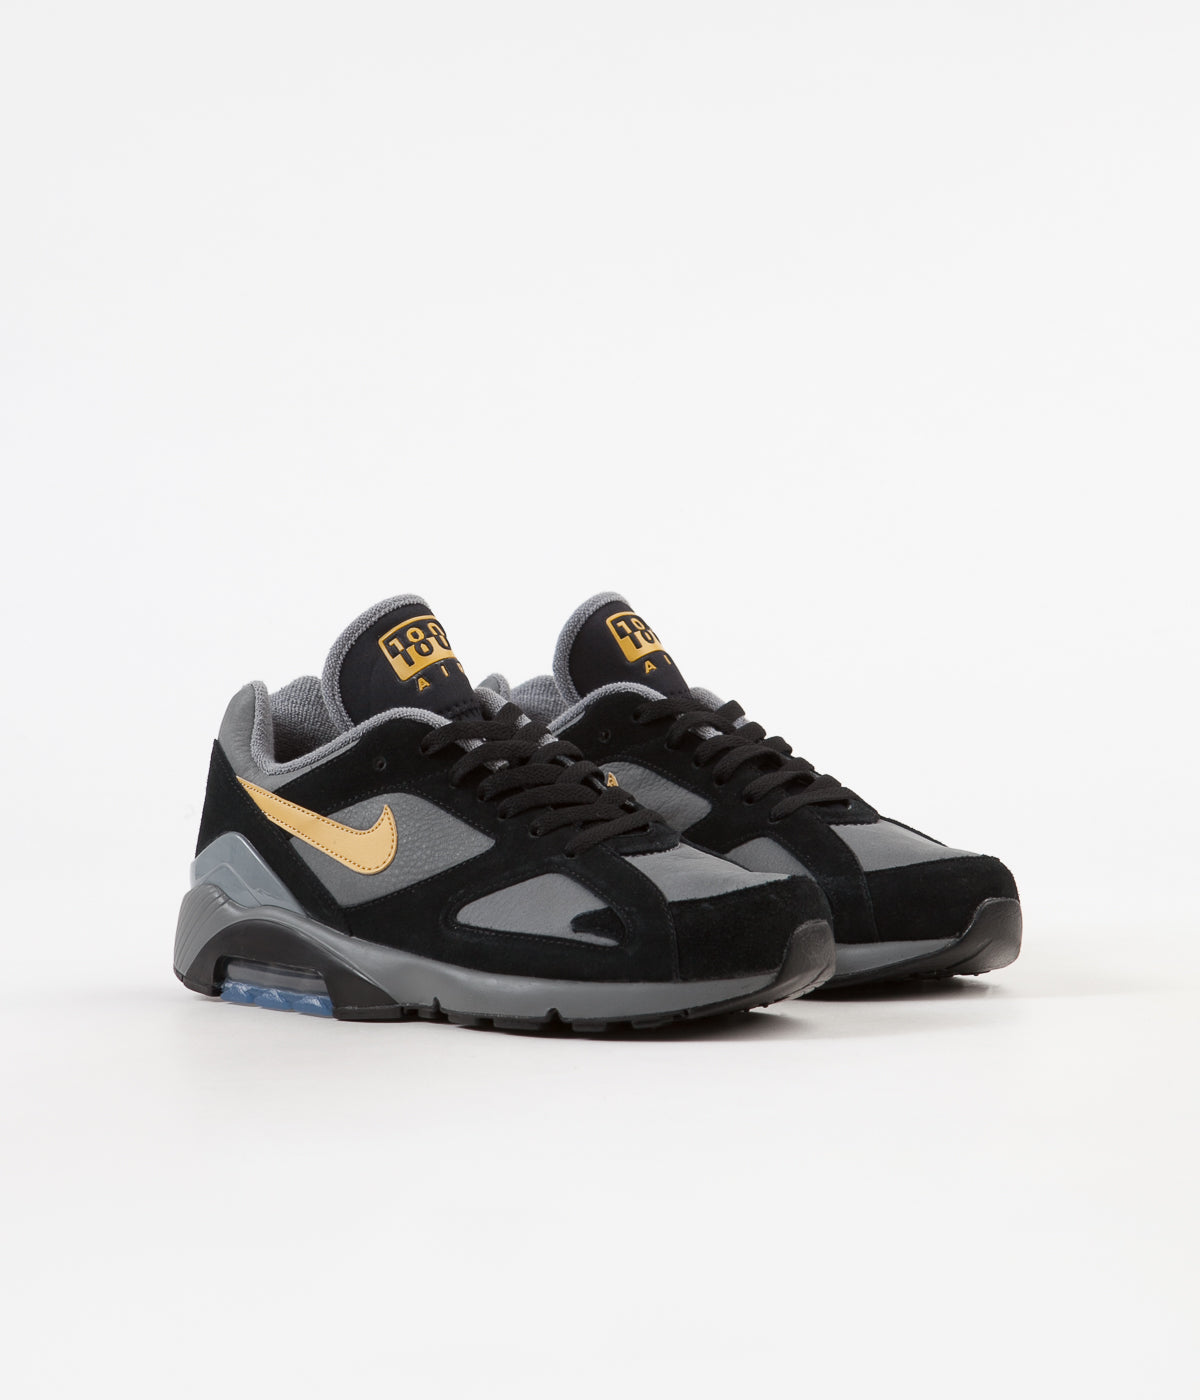 40a86ad035 Nike Air Max 180 Shoes - Cool Grey / Wheat Gold - Black | Always in ...